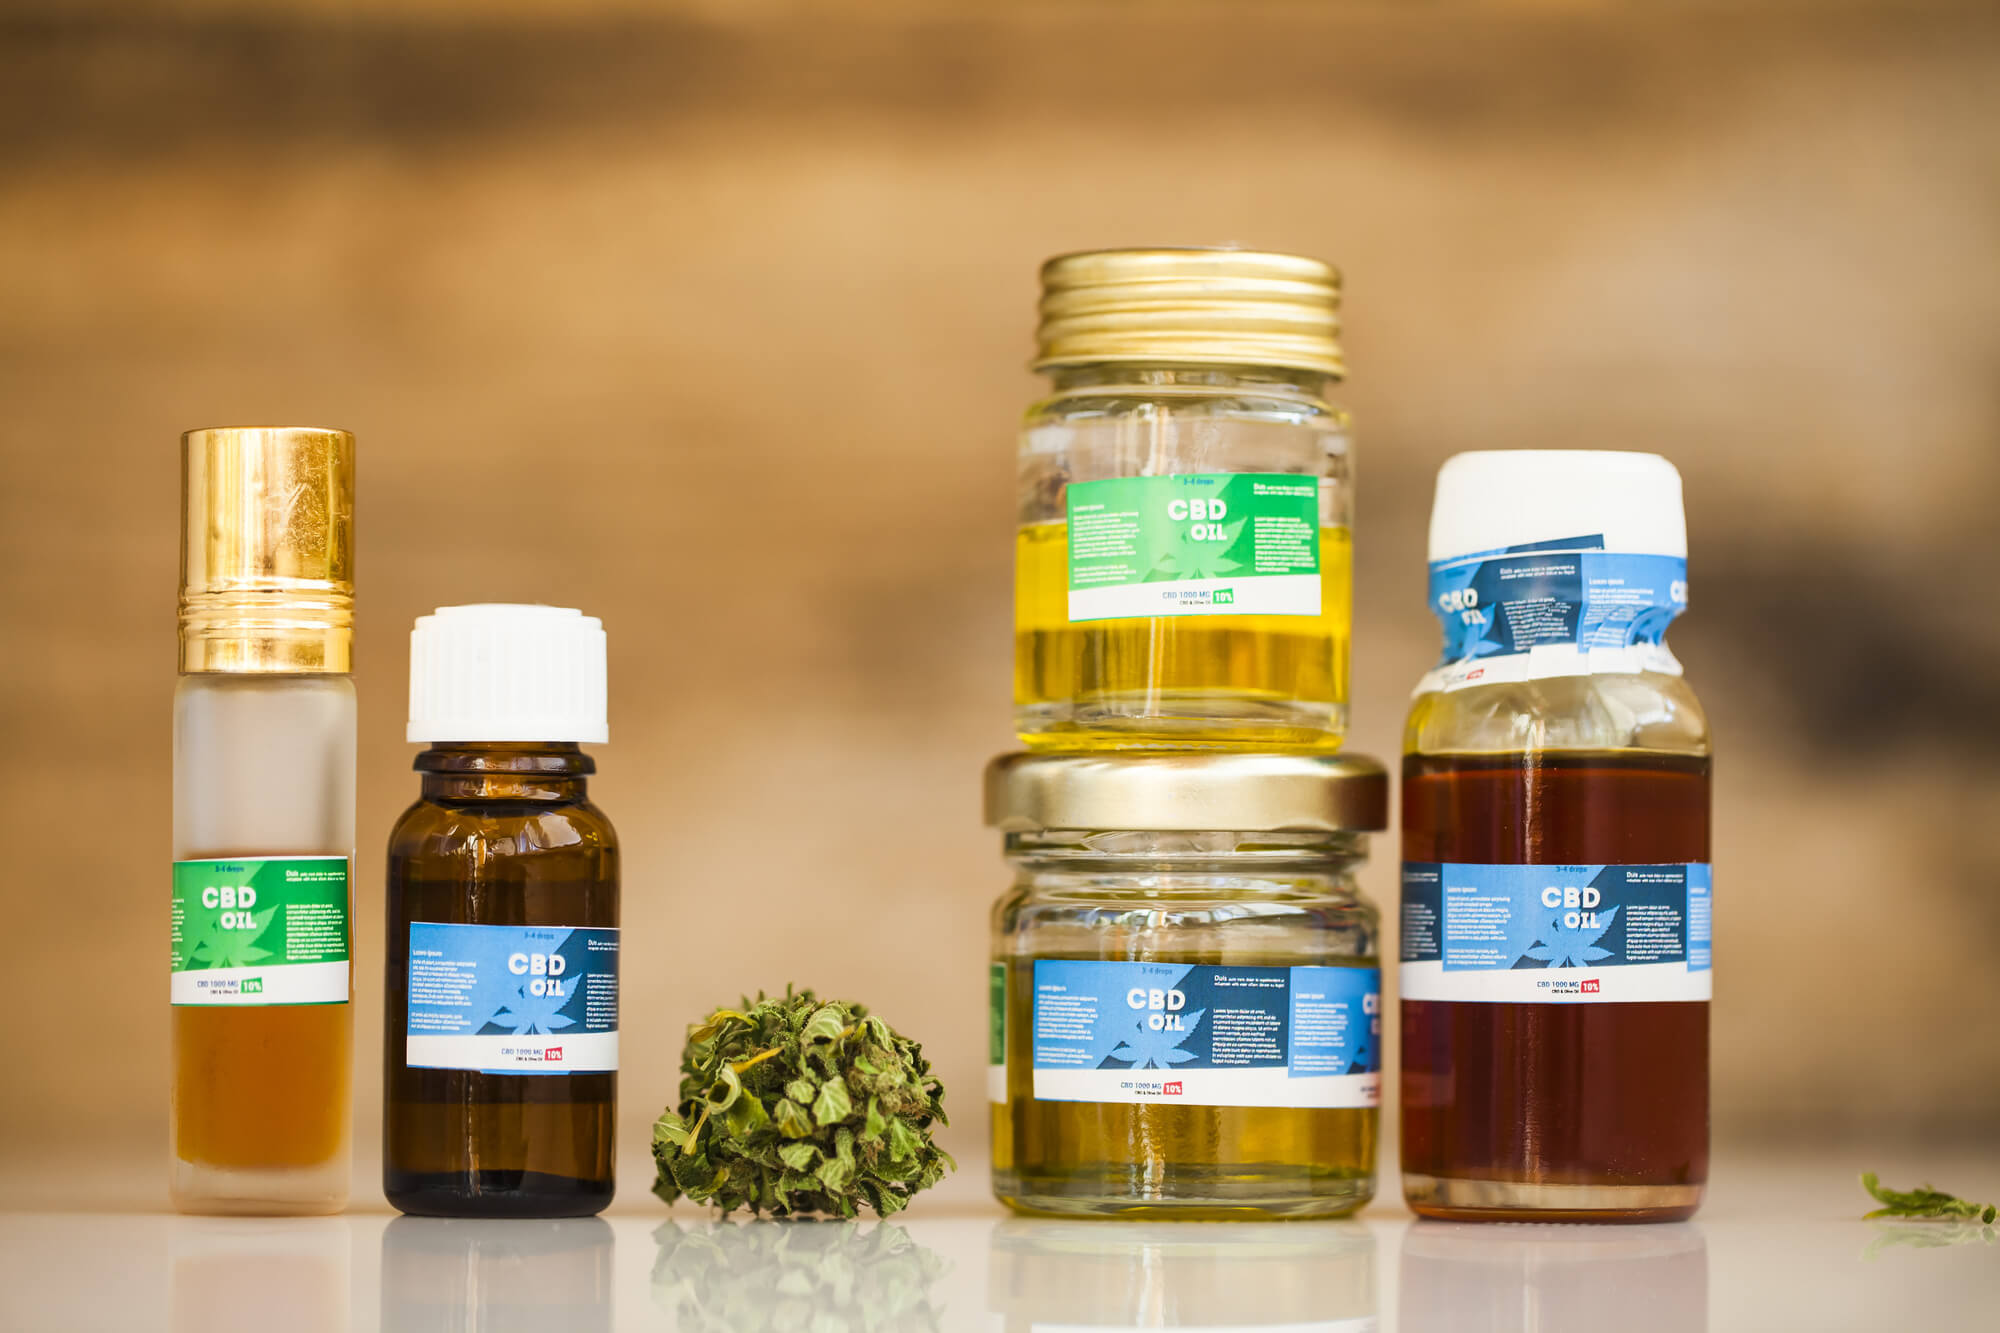 Guide to buy CBD or Hemp online